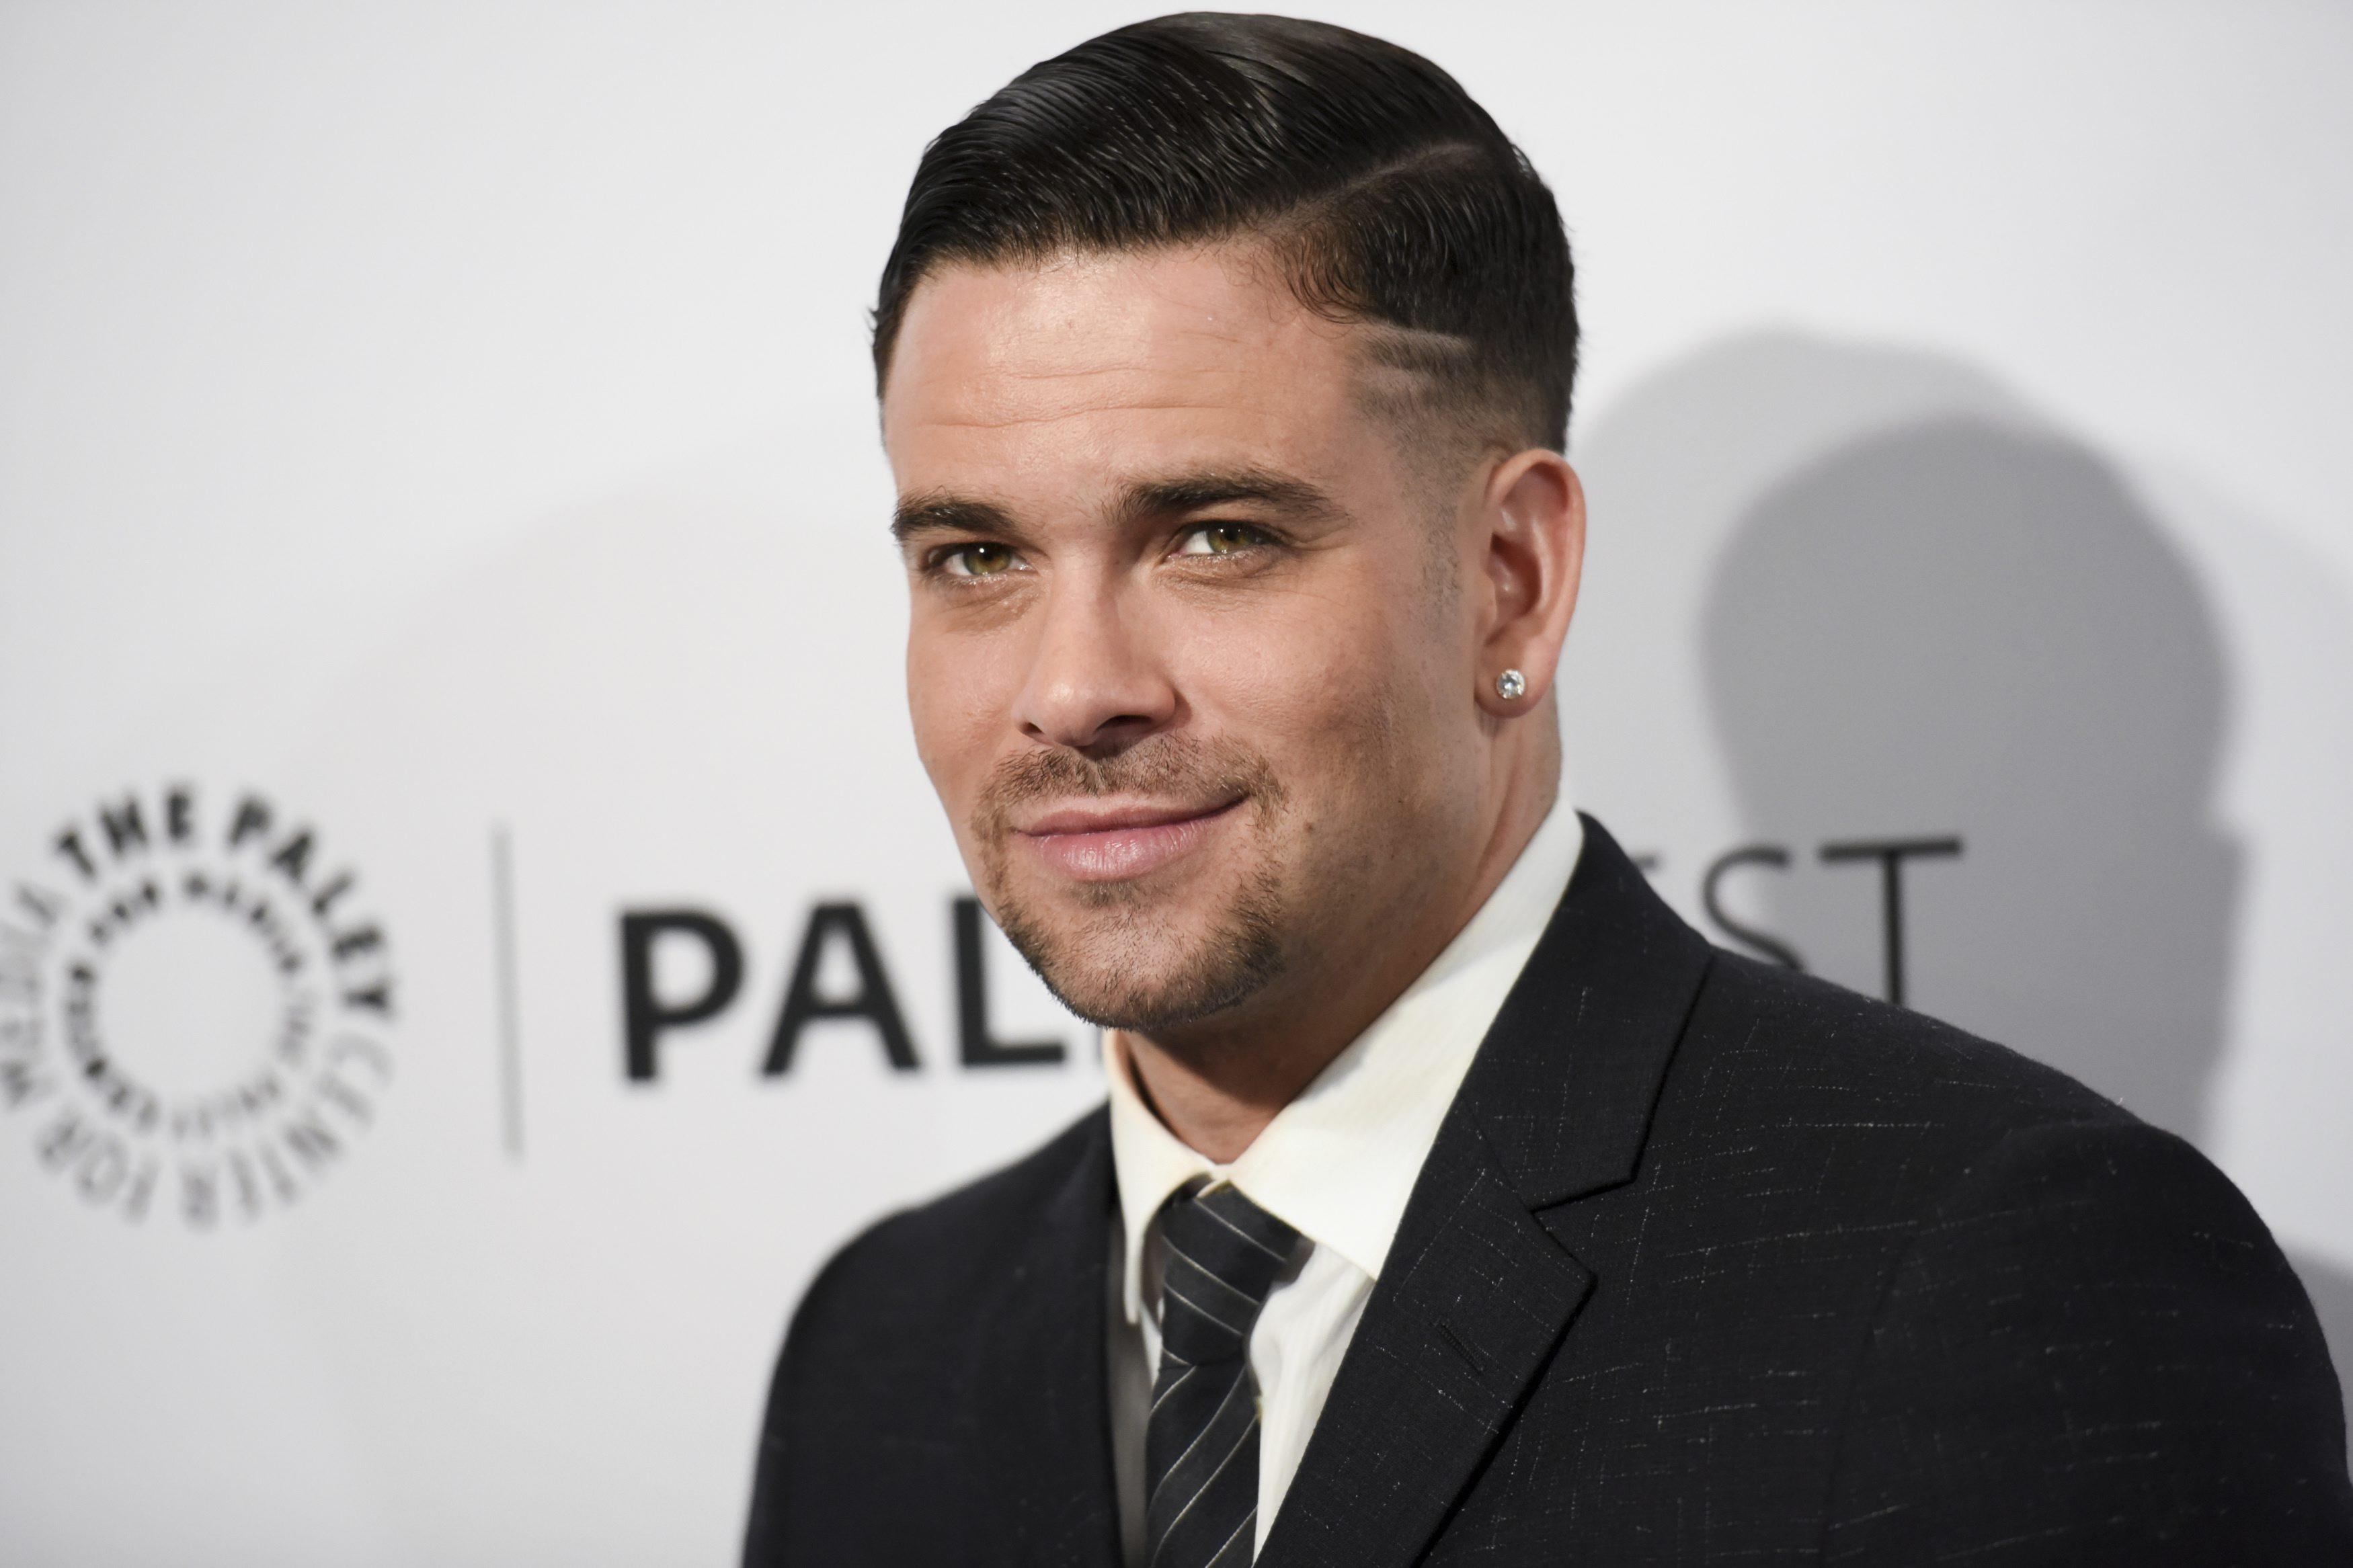 'Glee' actor Mark Salling found dead at 35